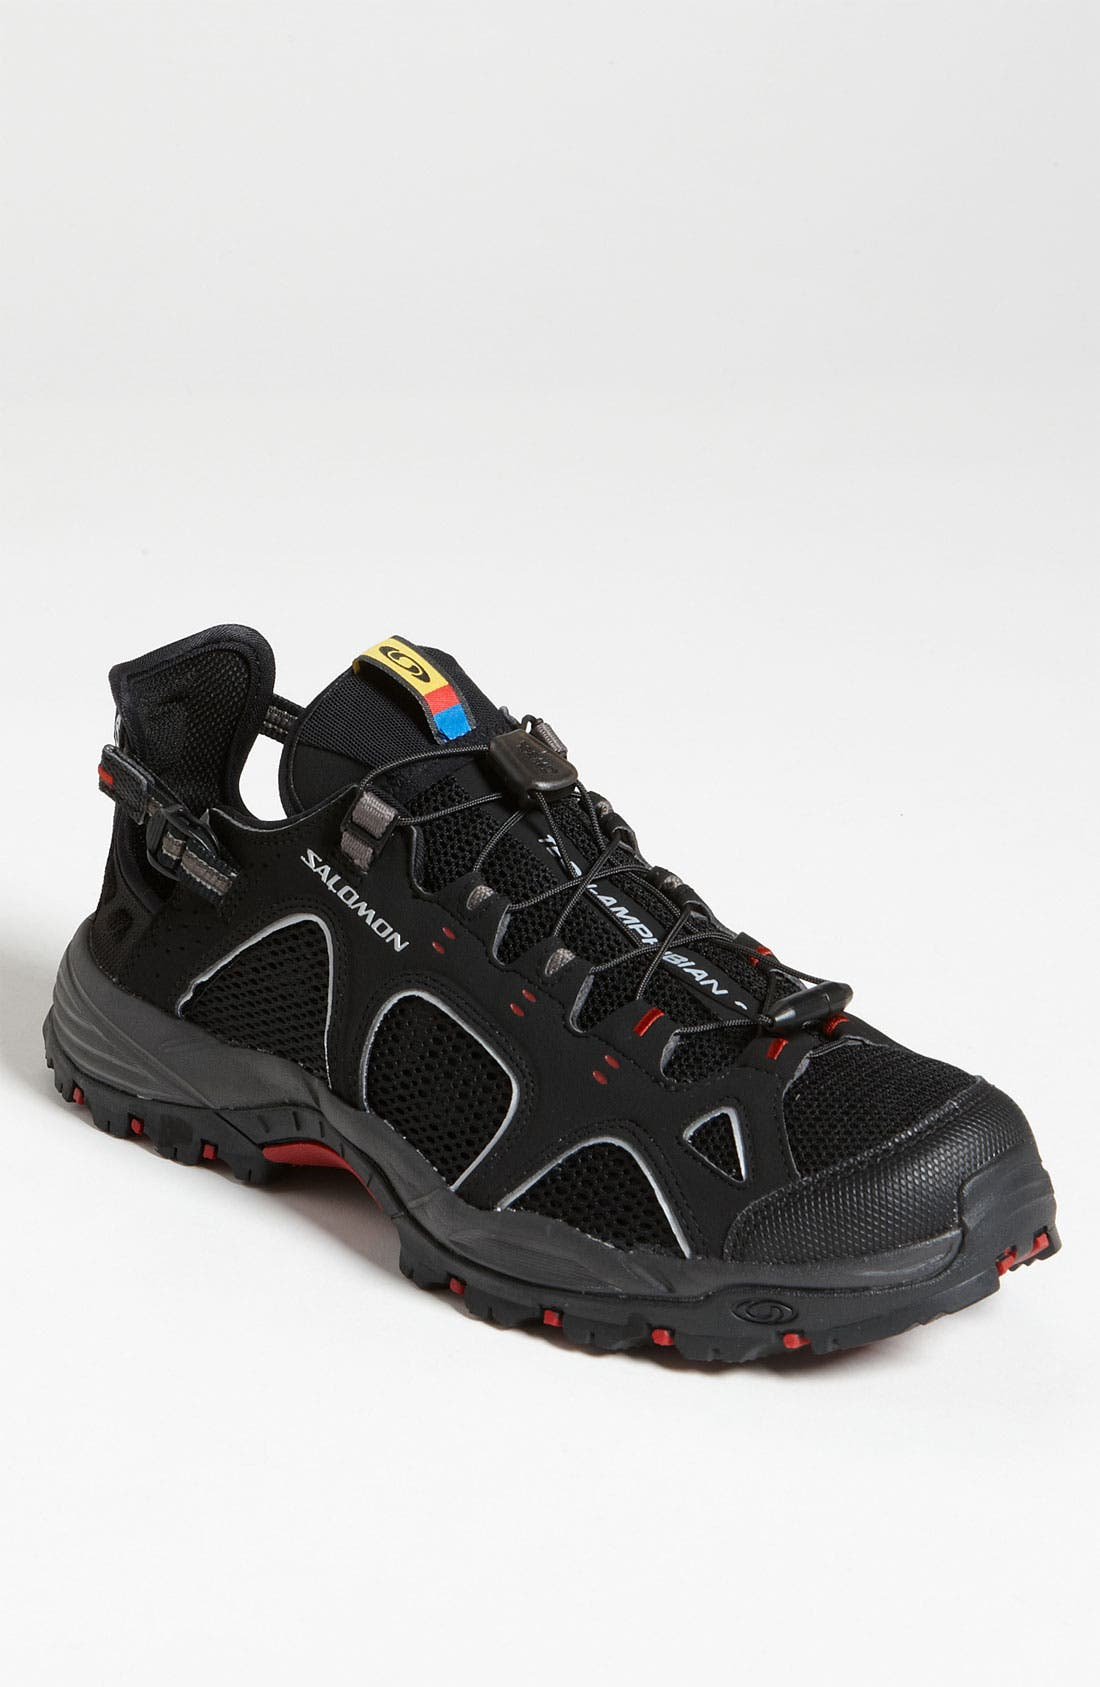 Main Image - Salomon 'Techamphibian 3' Hiking Shoe (Men)